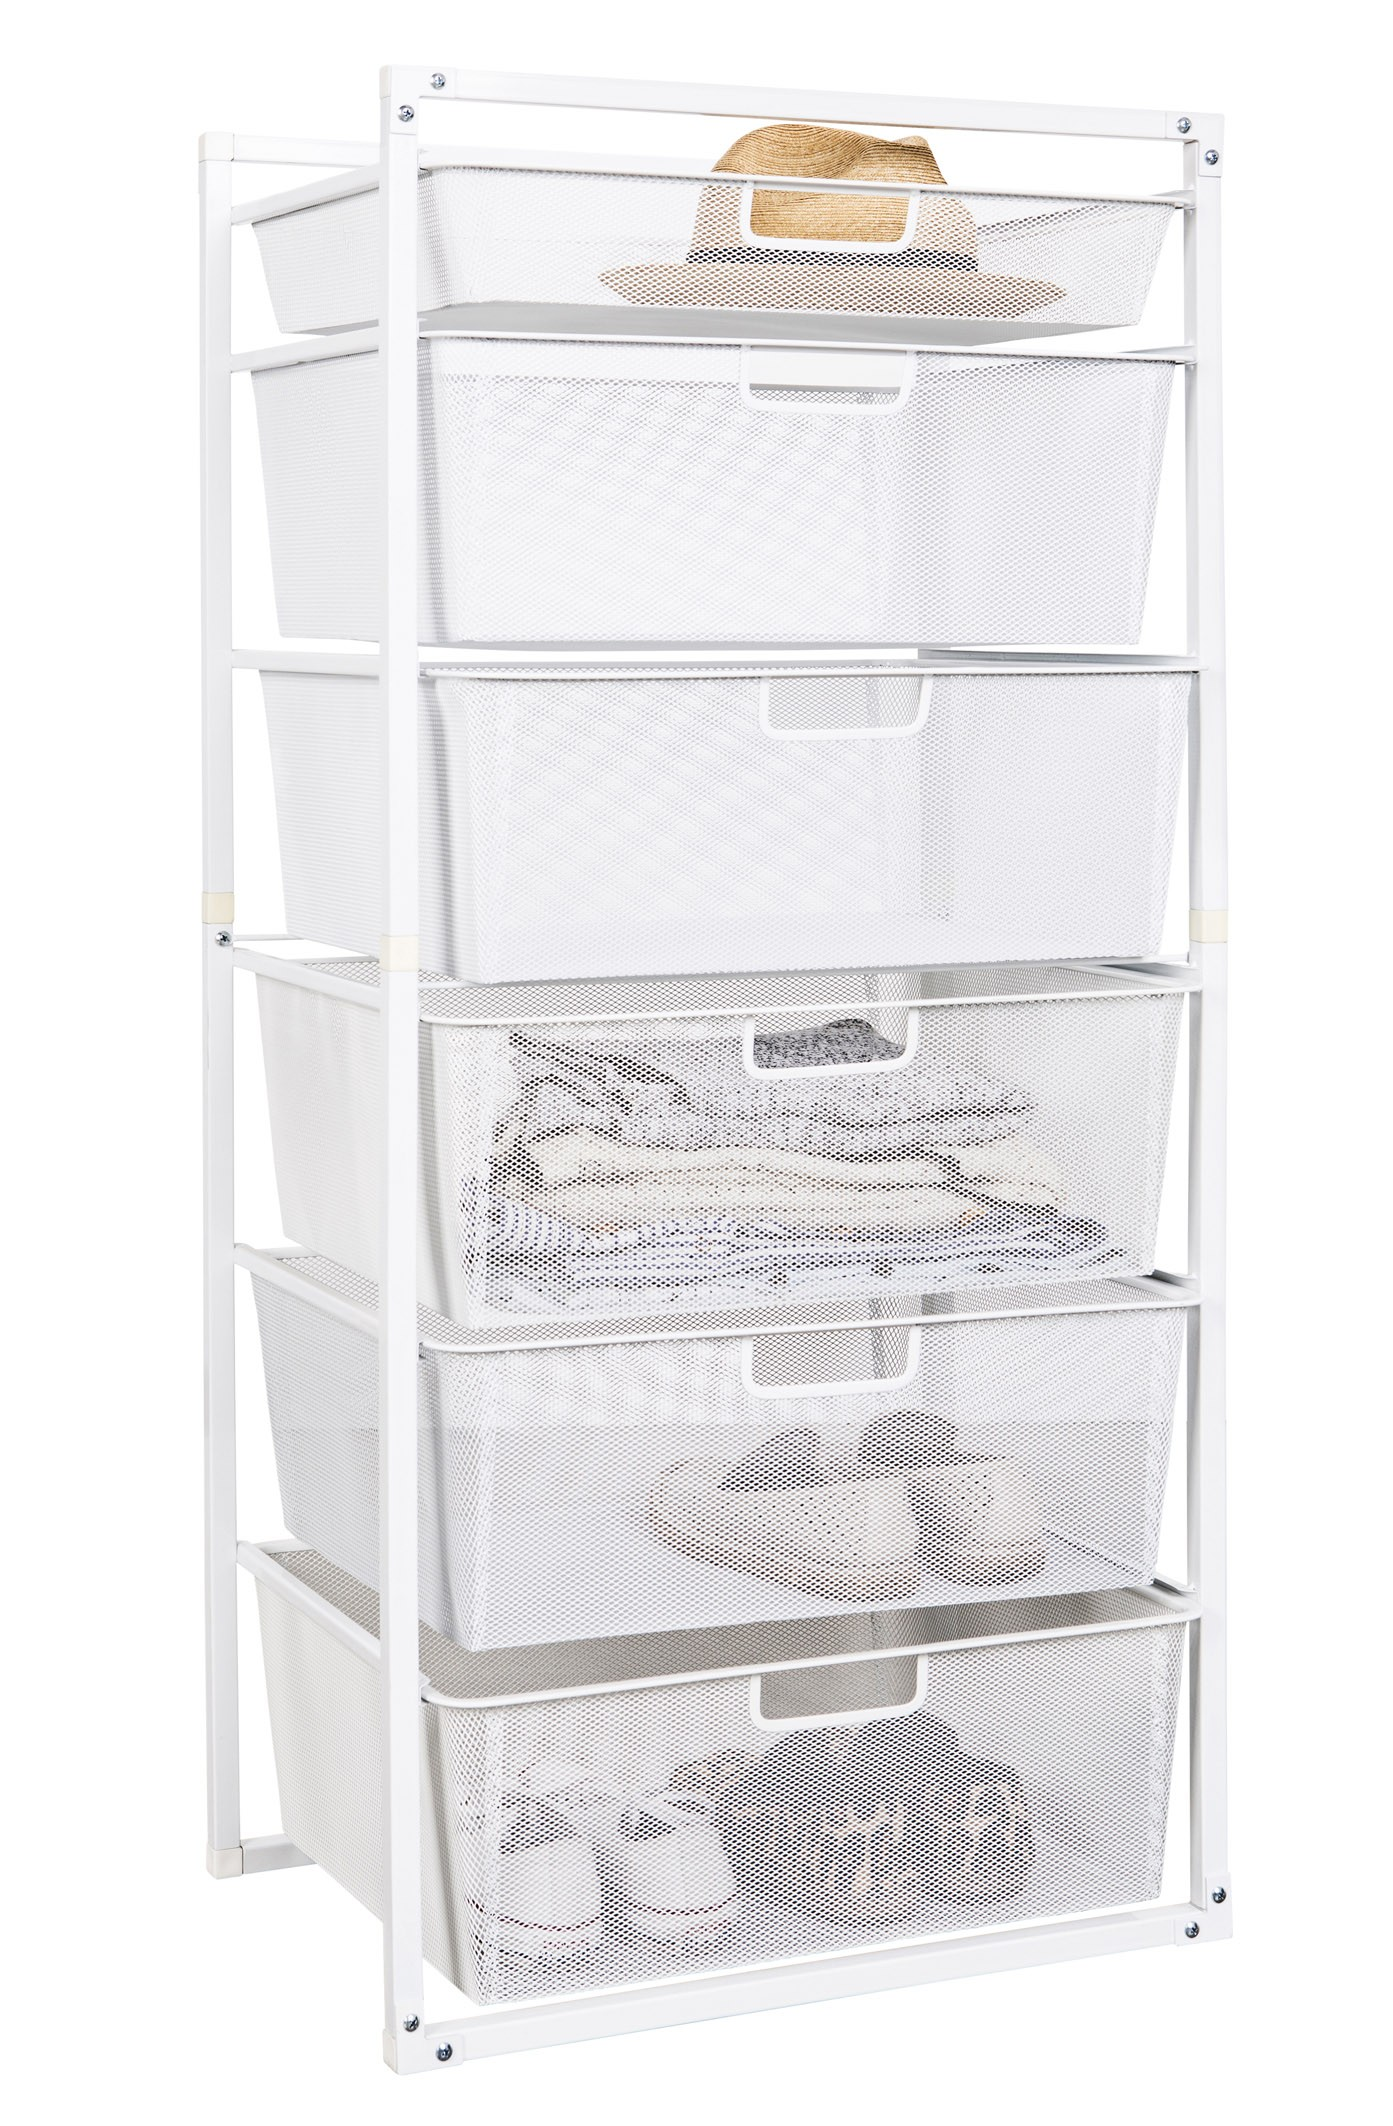 Mesh Drawer Baskets White 6 Tier From Storage Box